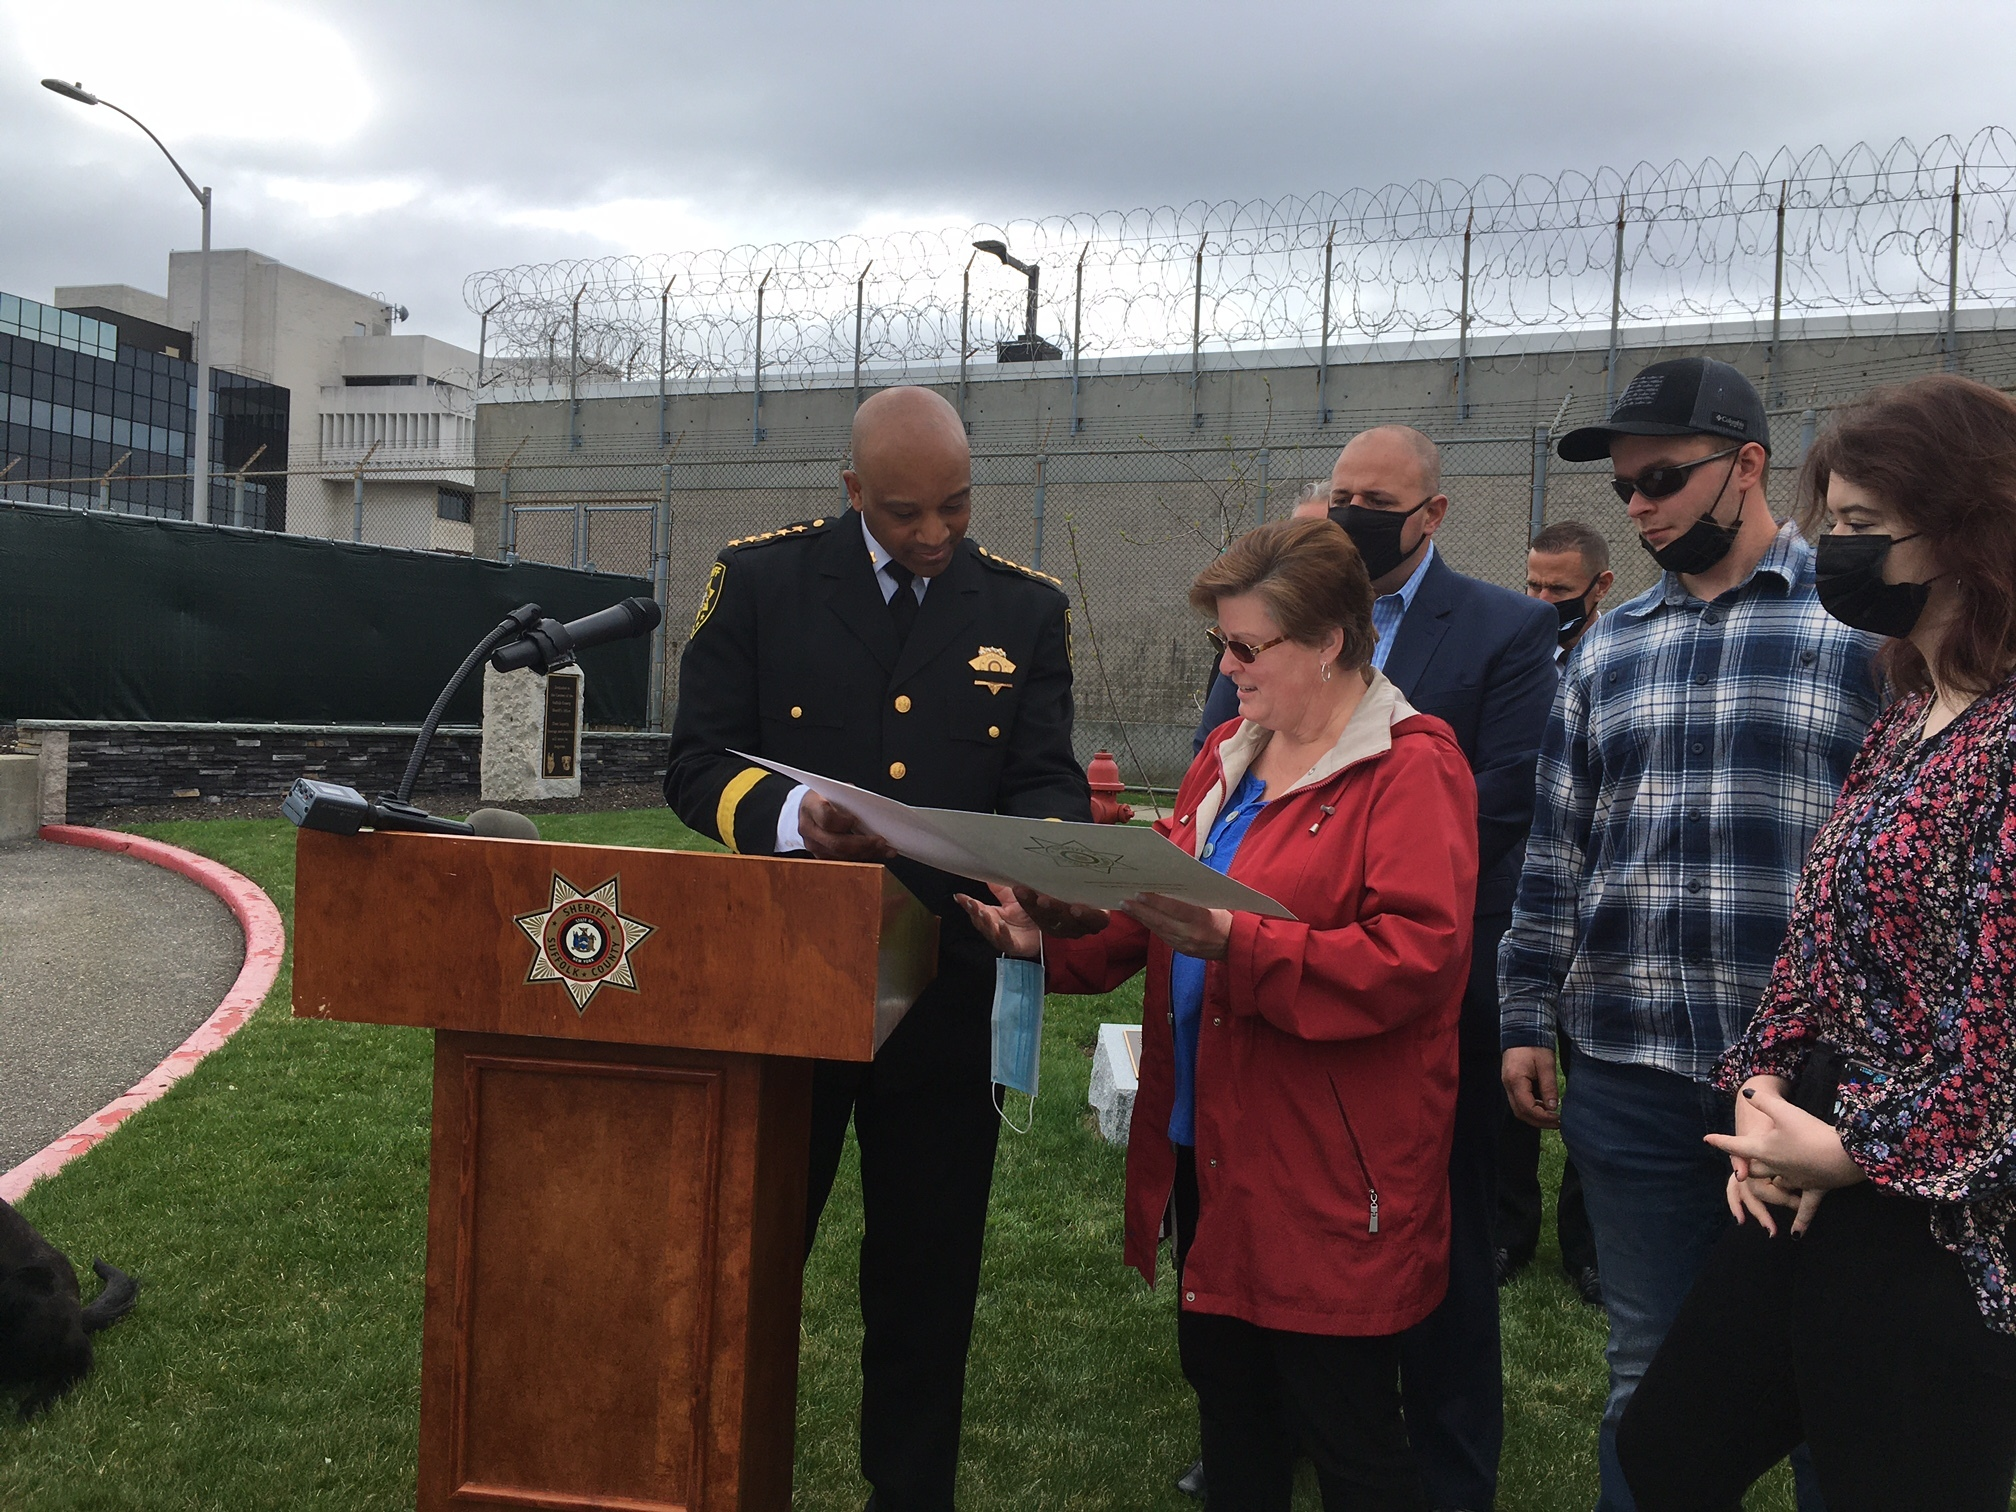 Sheriff Errol D. Toulon Jr. presents Stacey Reister and family with a proclamation .